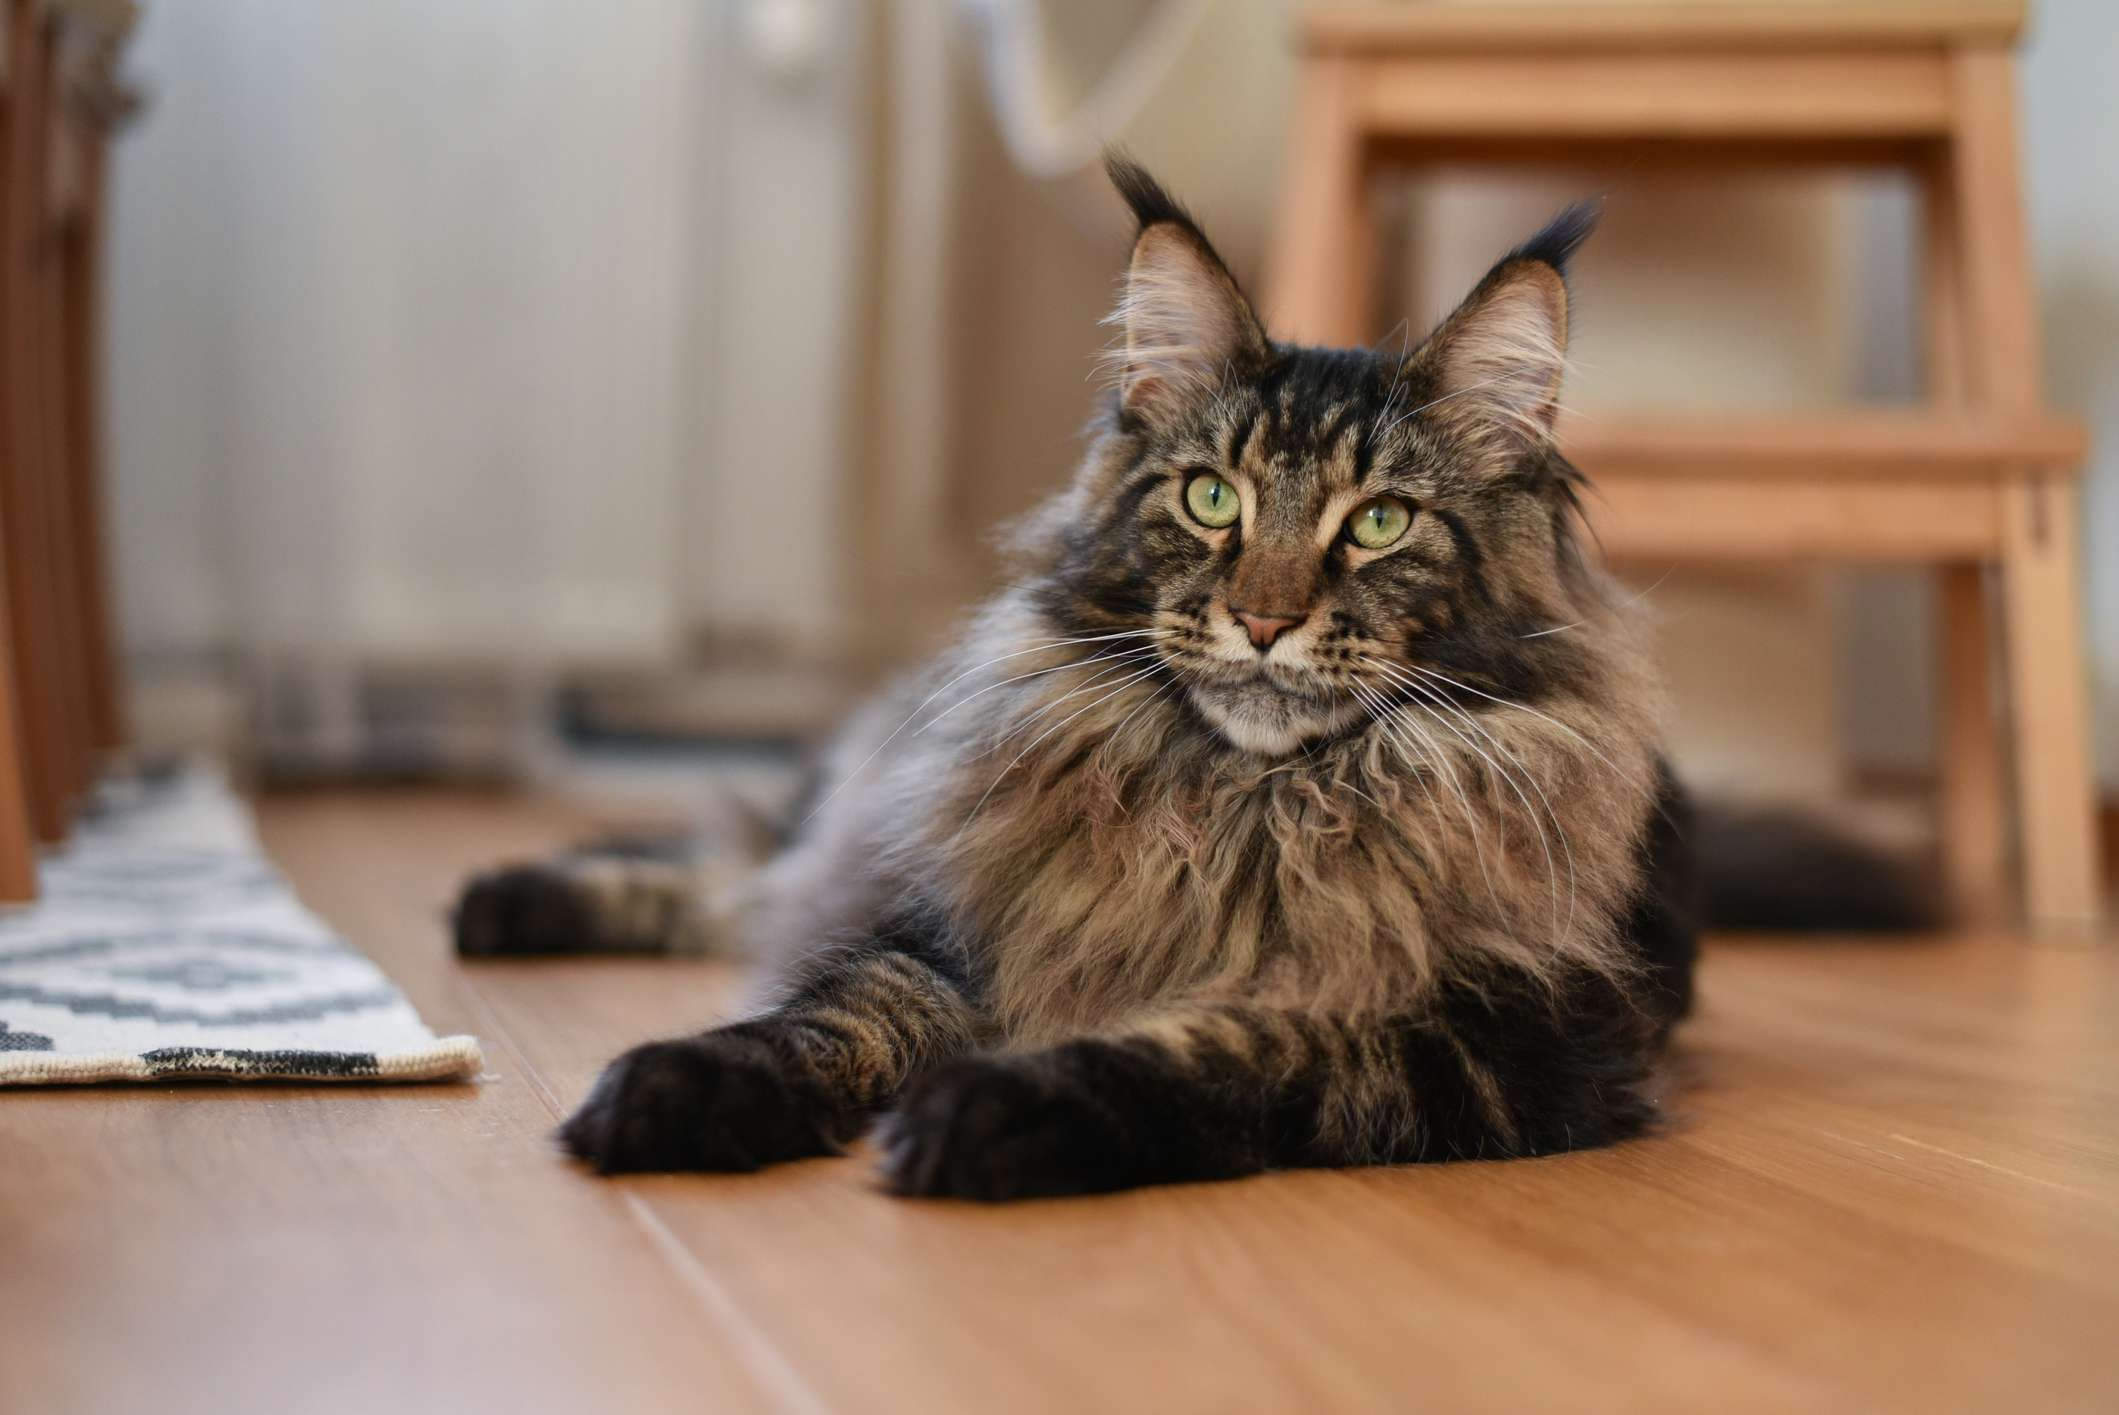 A brown tabby Maine Coon cat with pointed ears laying on wood floor and looking past camera.